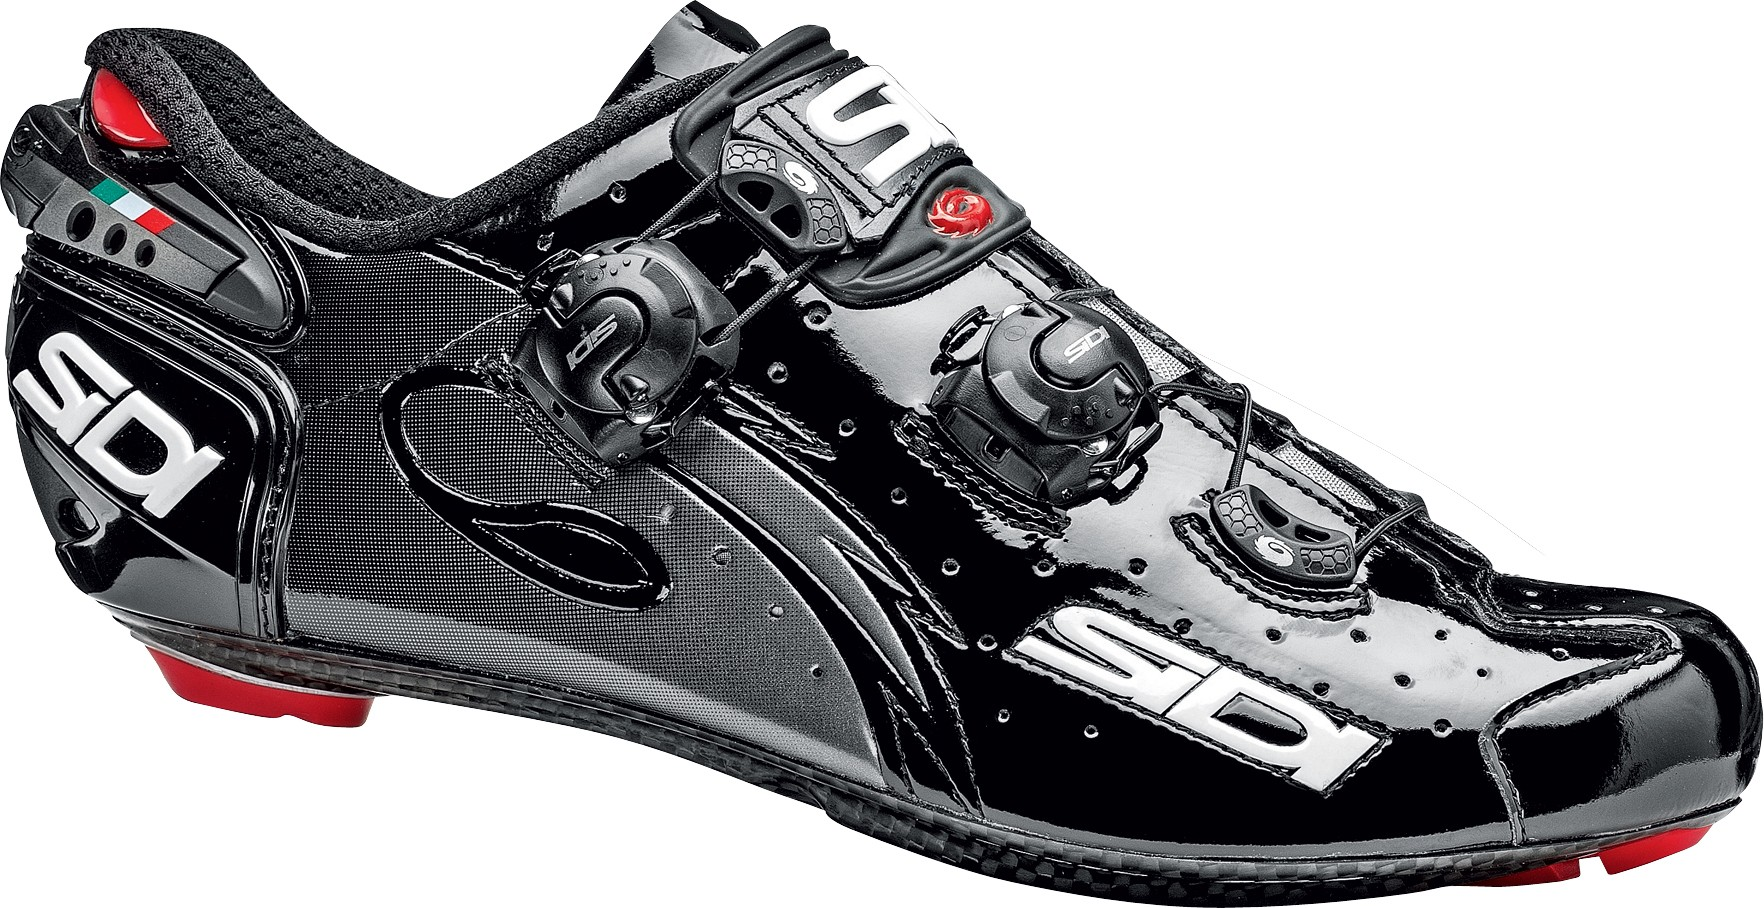 Sidi Road Shoes Review | Sidi Wire Carbon Vernice | Sidi Wire Mega